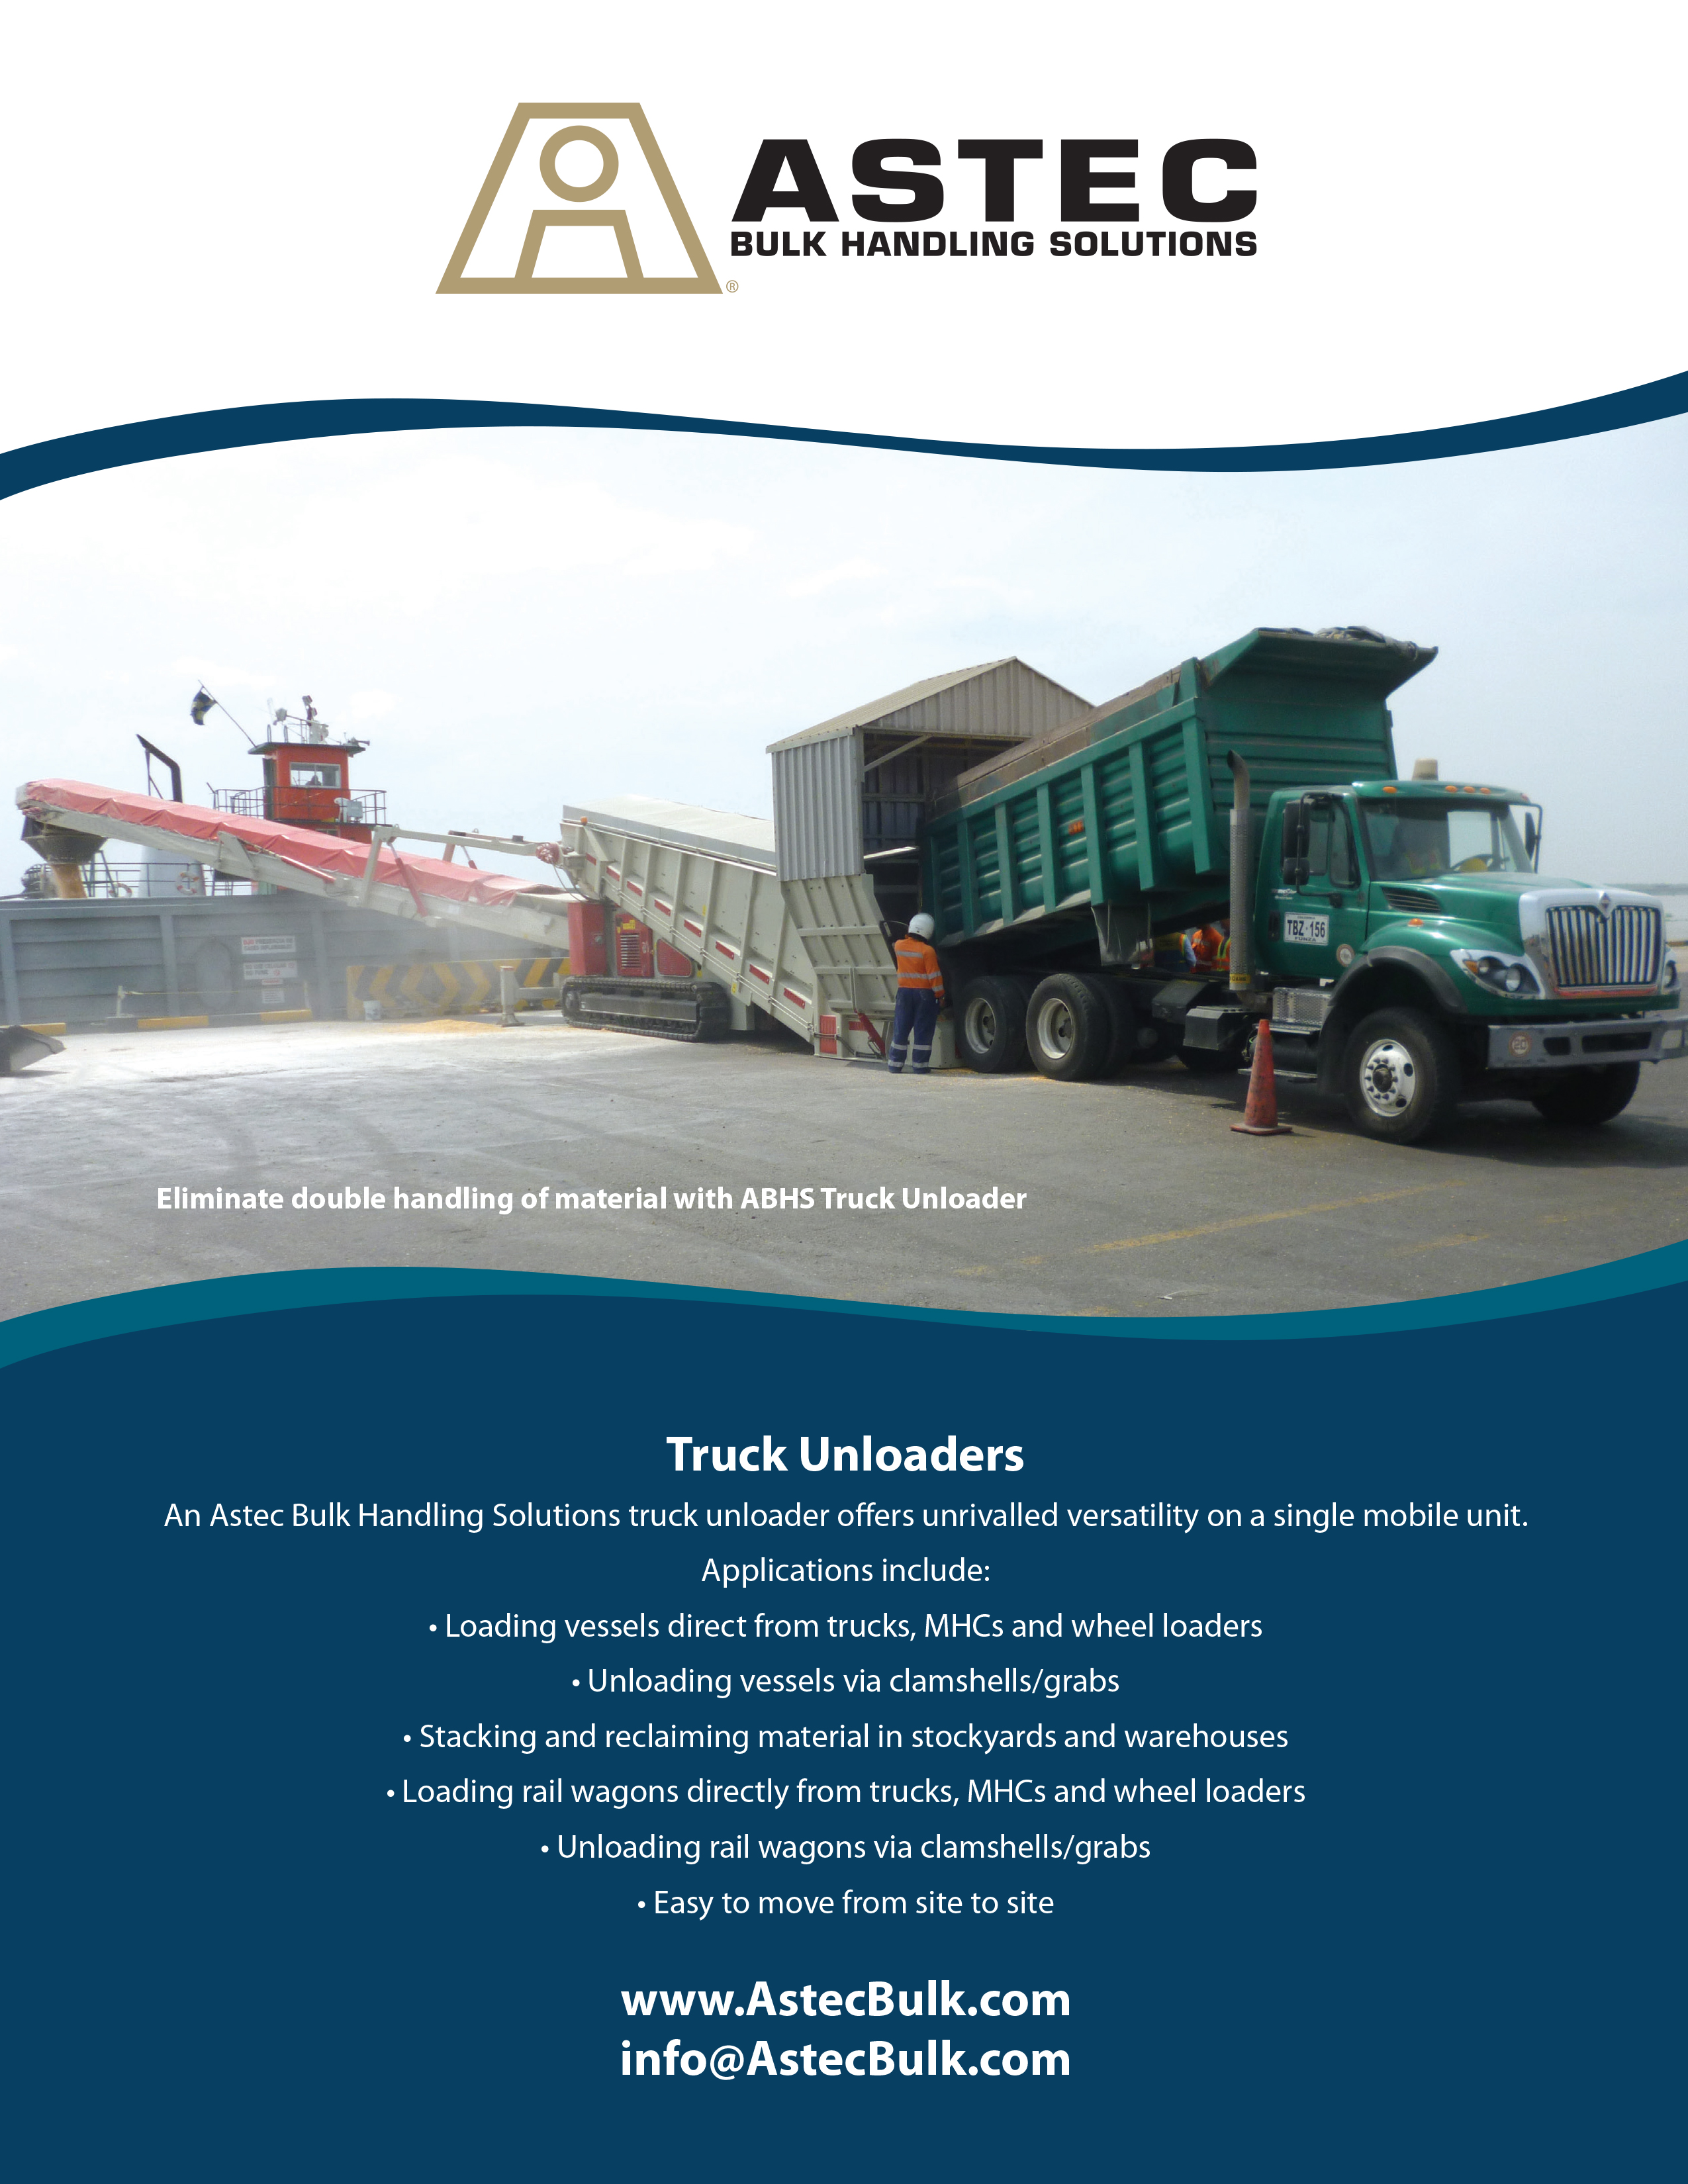 Find out about ABHS Truck Unloaders